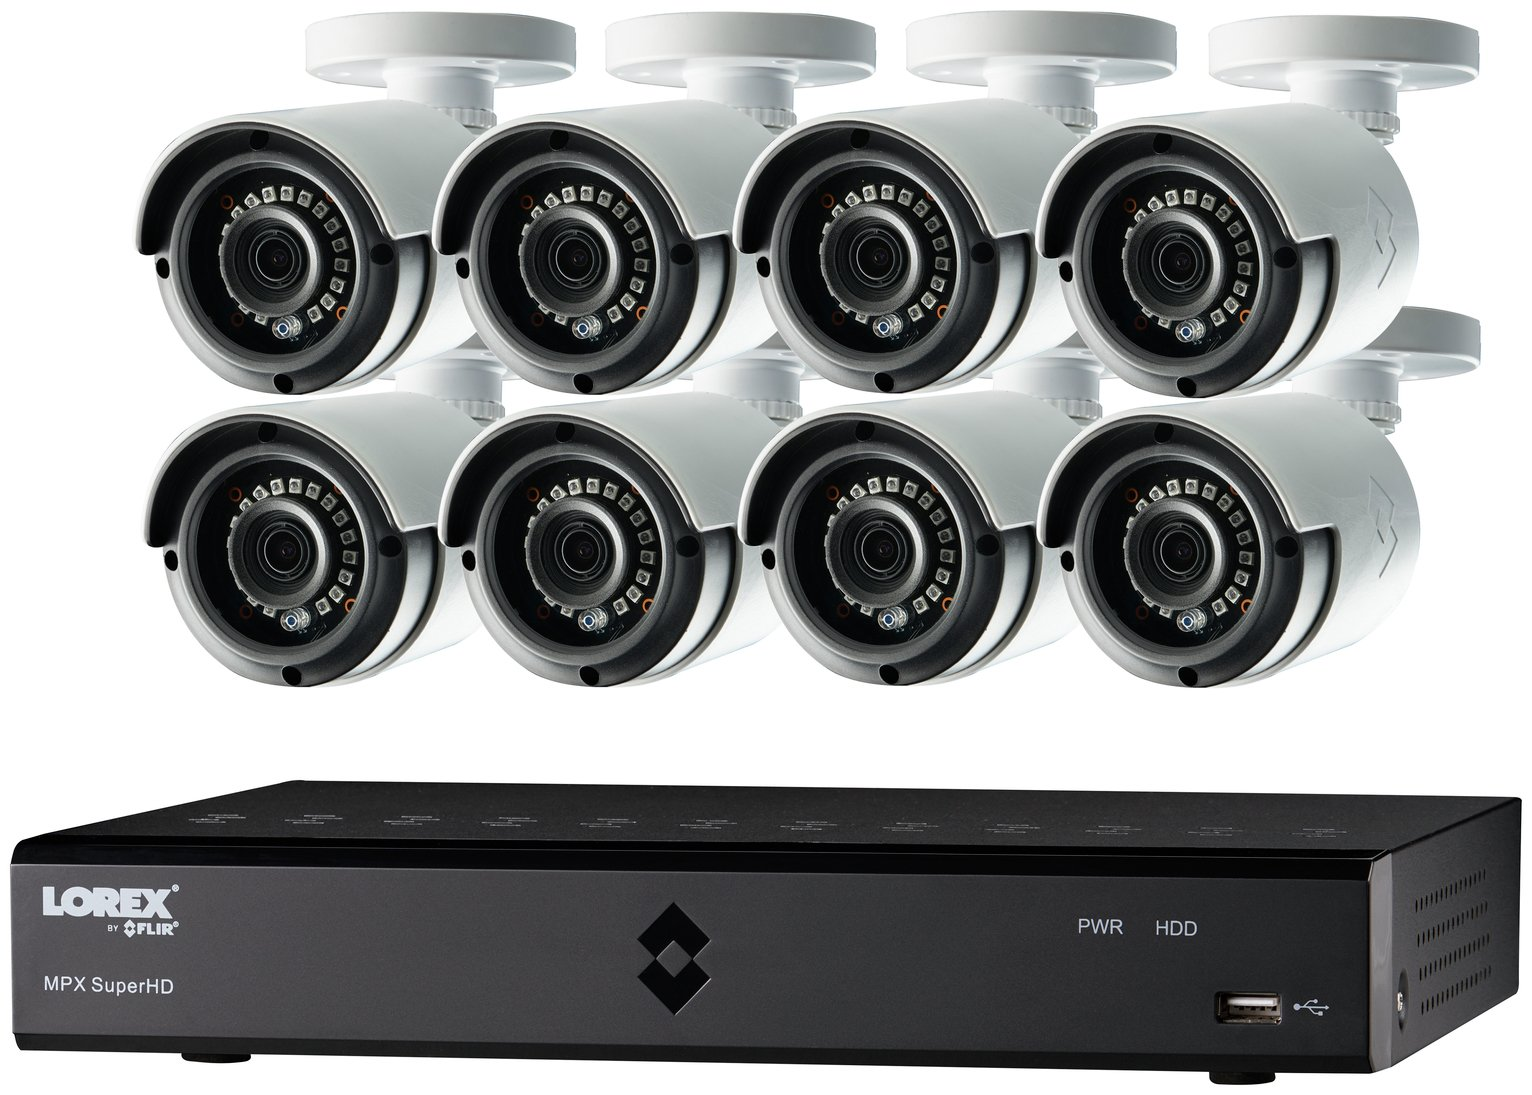 Image of Lorex 16 Channel 1080P 2TB DVR and 8 Camera CCTV